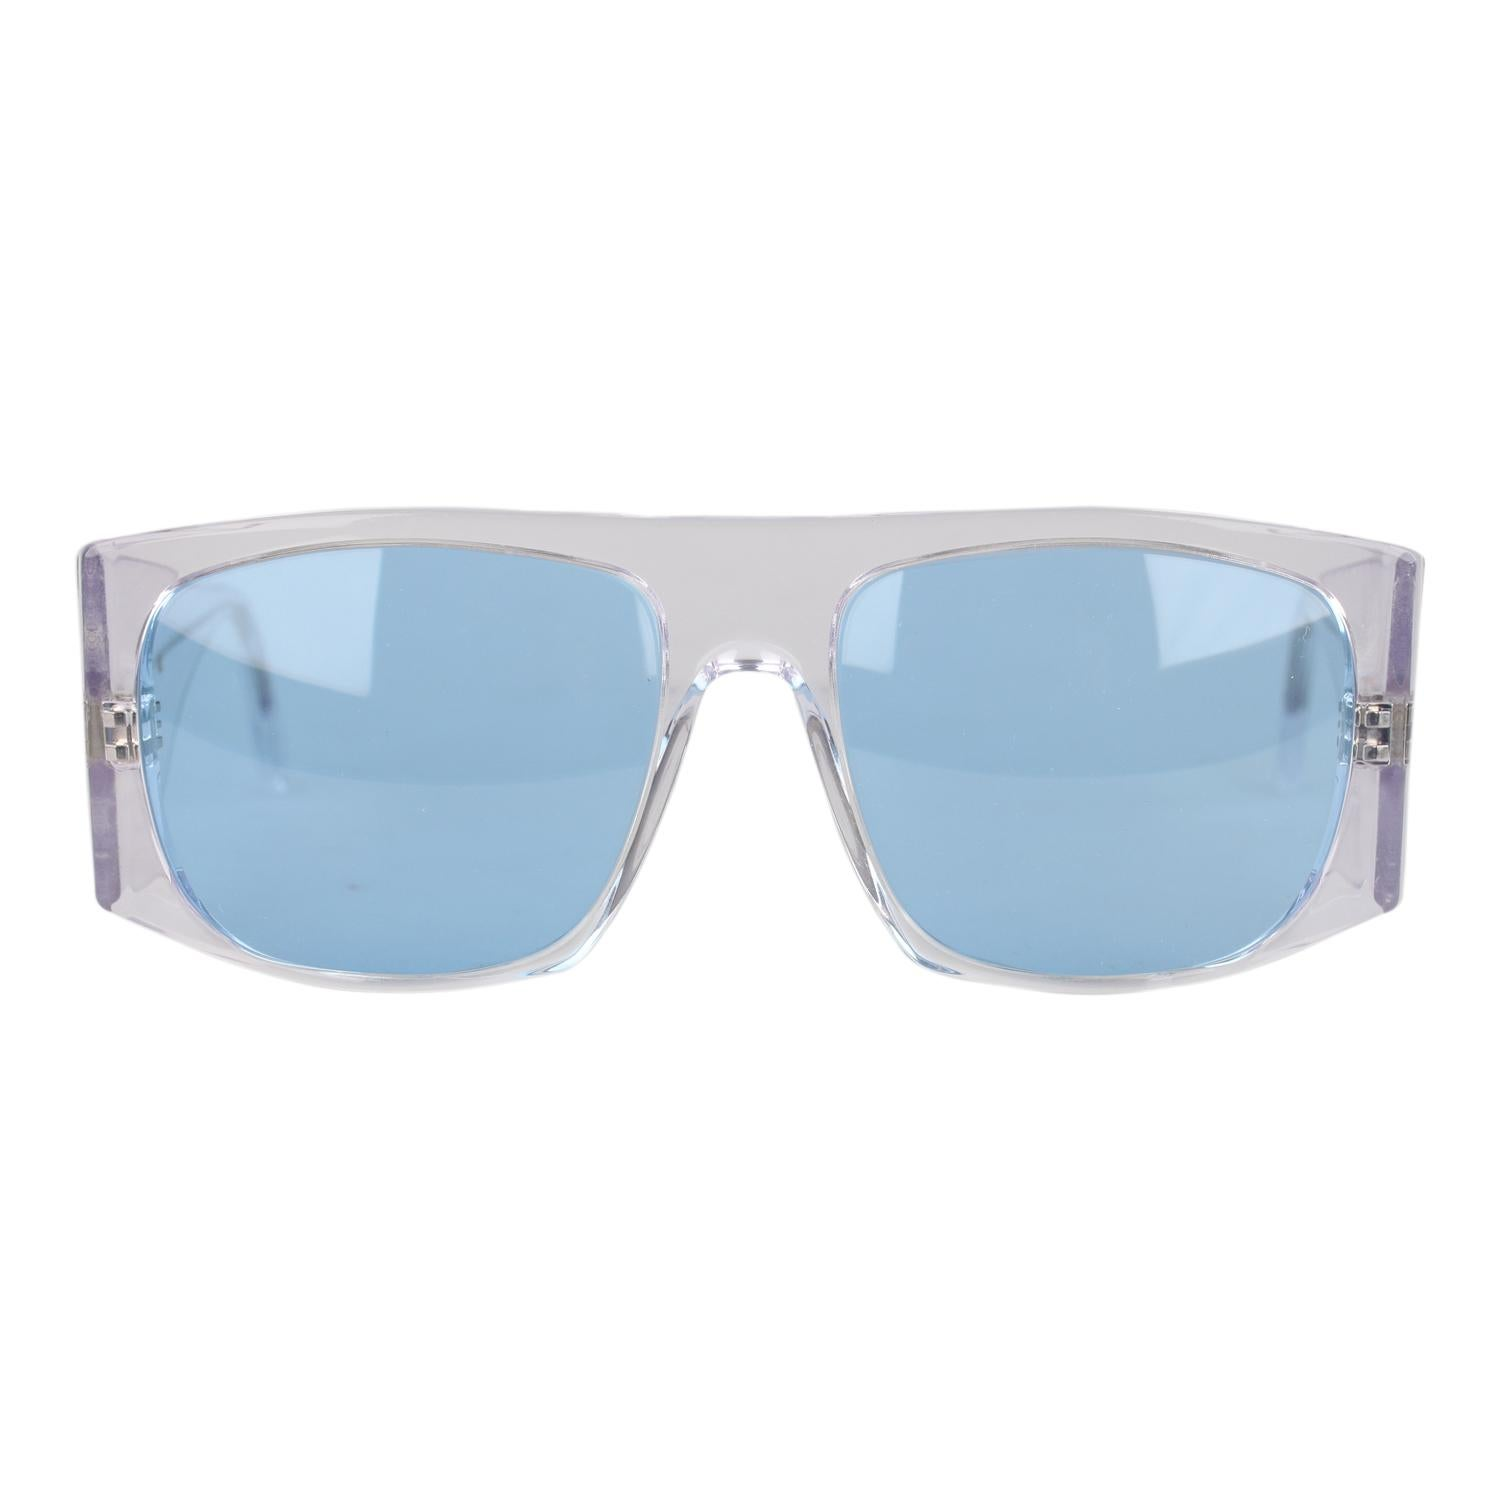 77887e9cdc Vintage Sunglasses For Sale in Italy - 1stdibs - Page 2